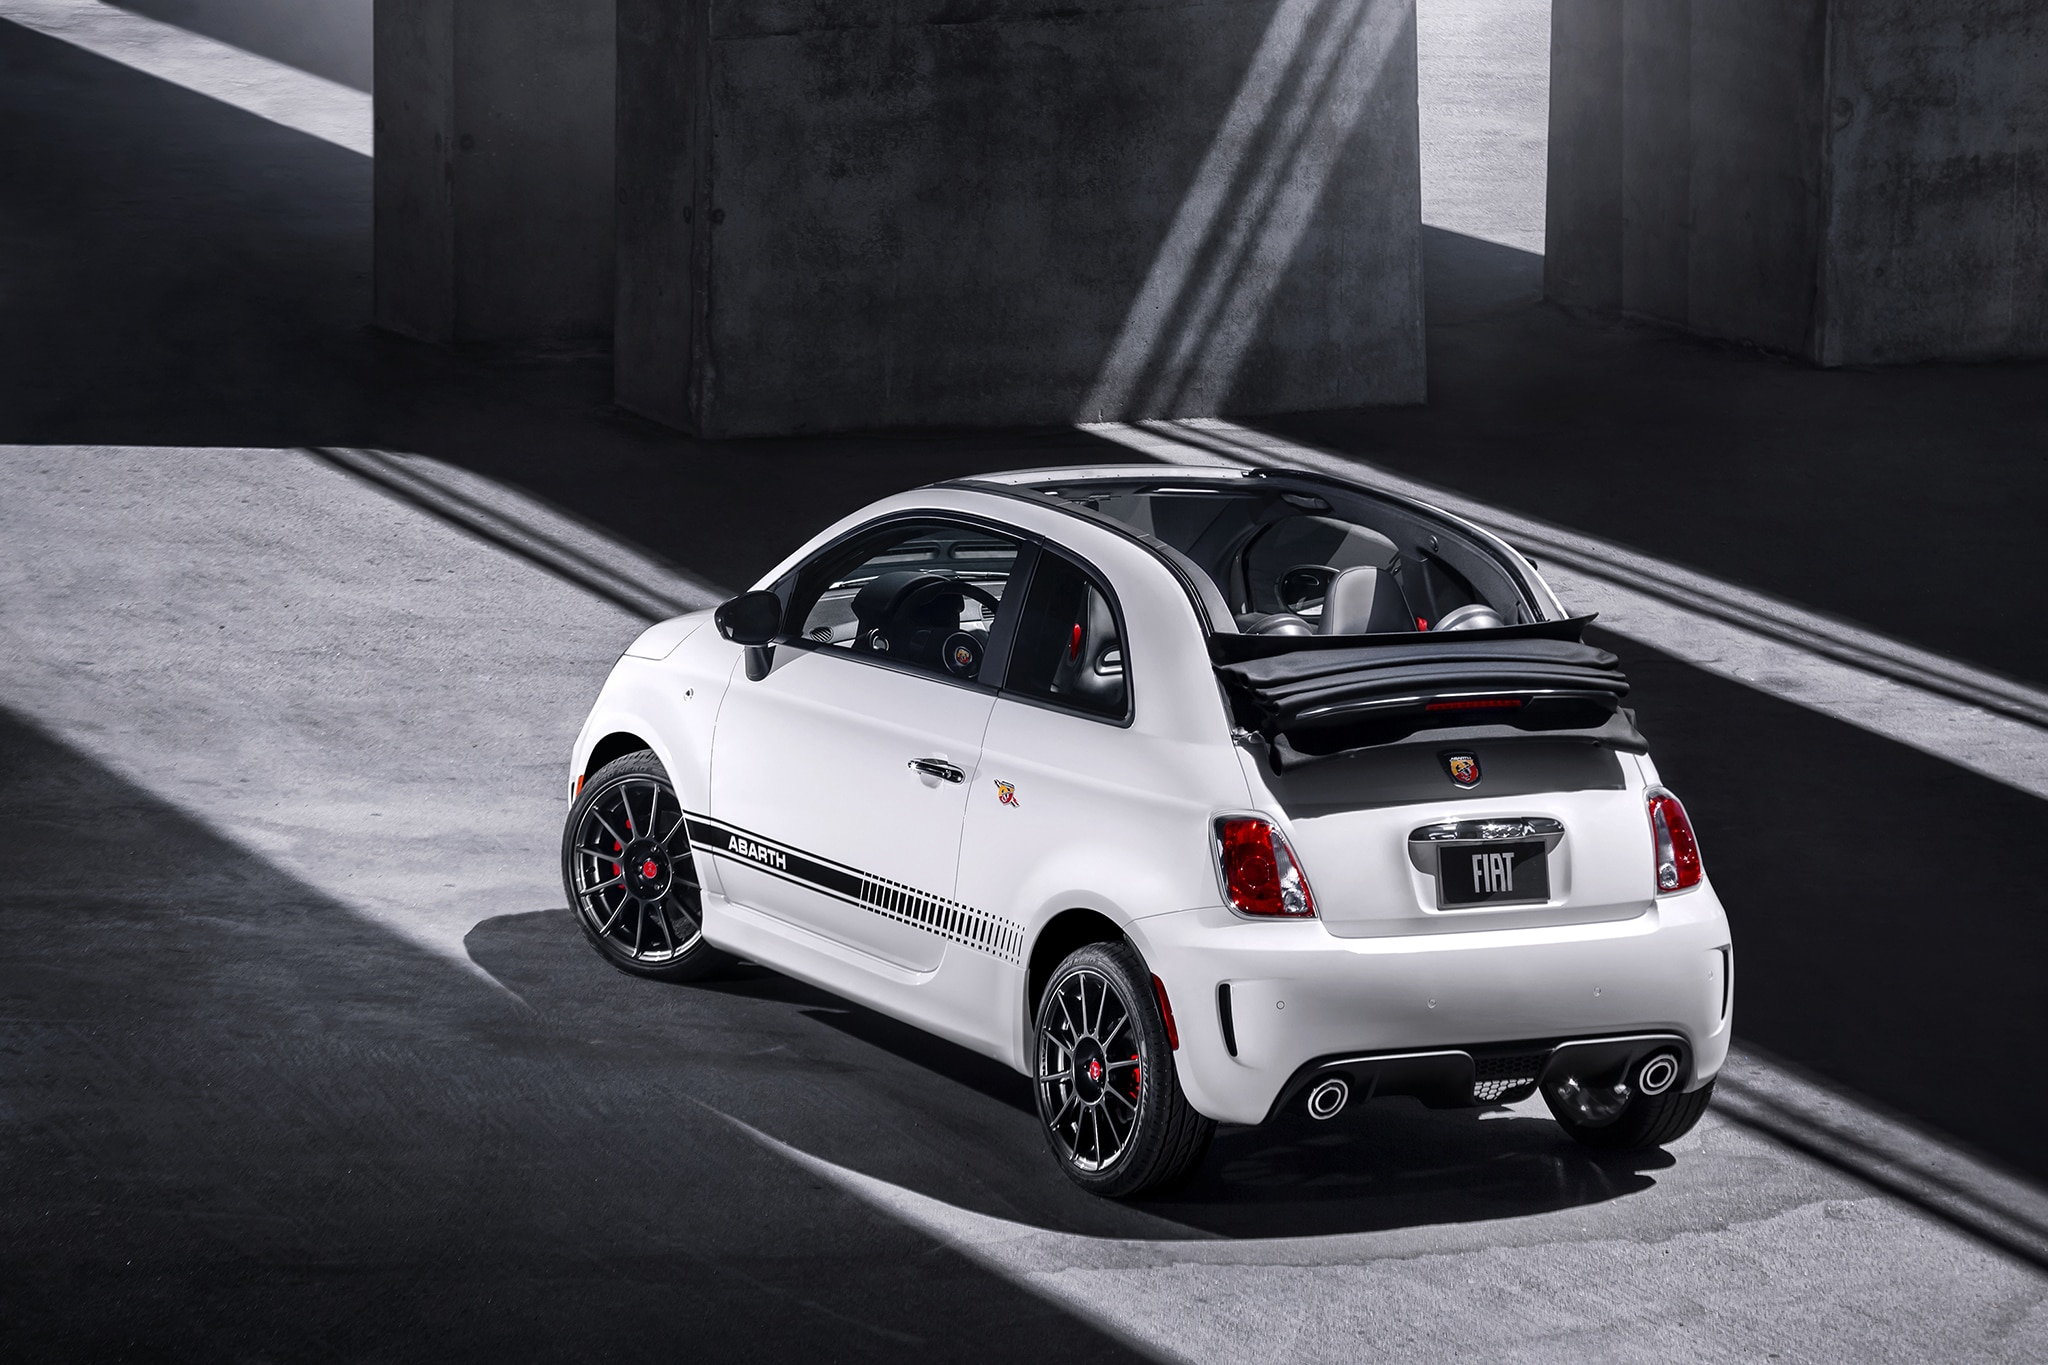 2019 Fiat 500 Abarth Cabriolet Review Fun But A Hard Sell